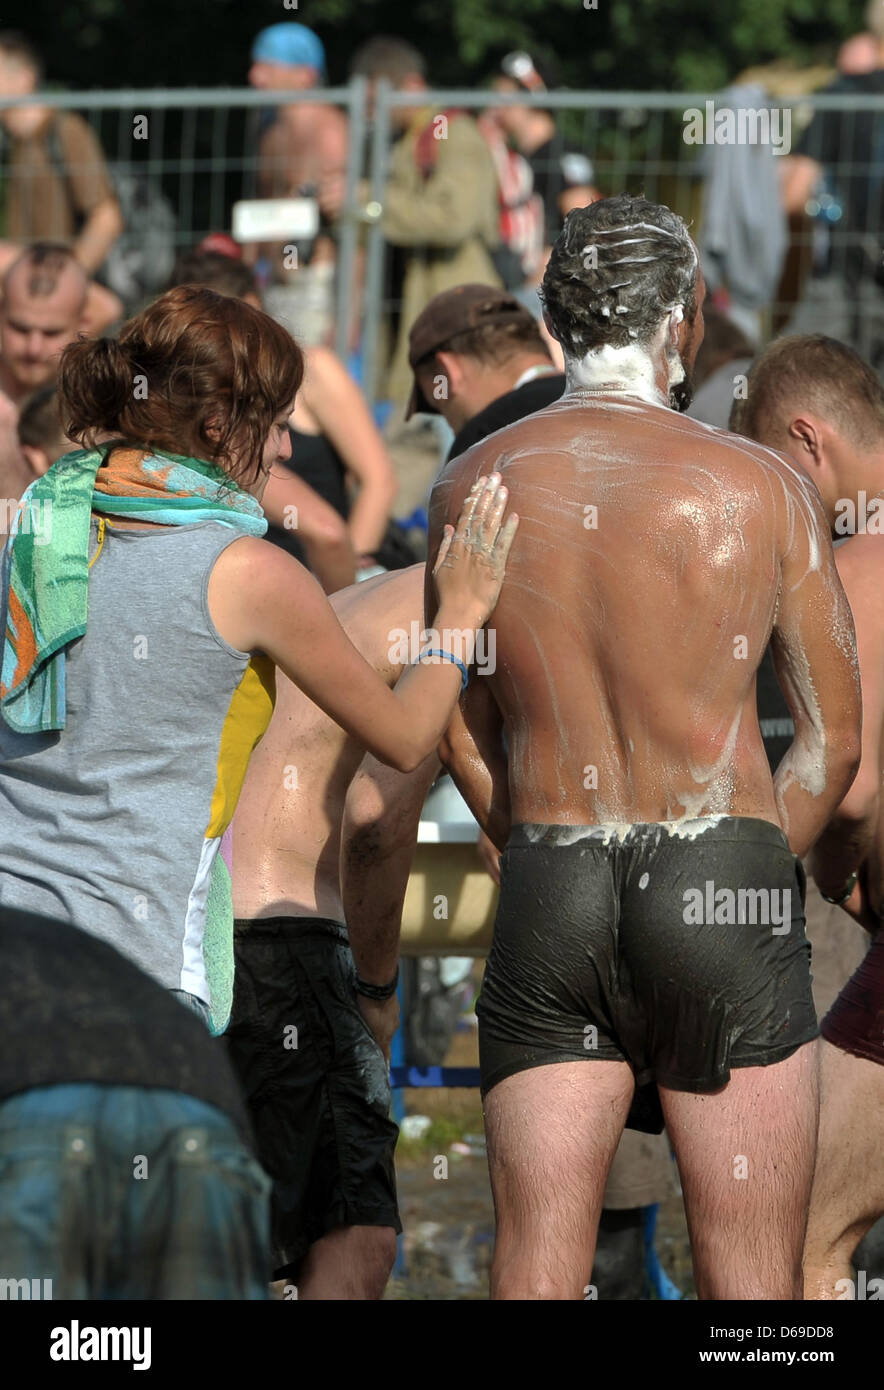 Festival visitors wash at the music festival 'Woodstock Station' in Kostrzyn, Poland, 04 August 2012. More - Stock Image